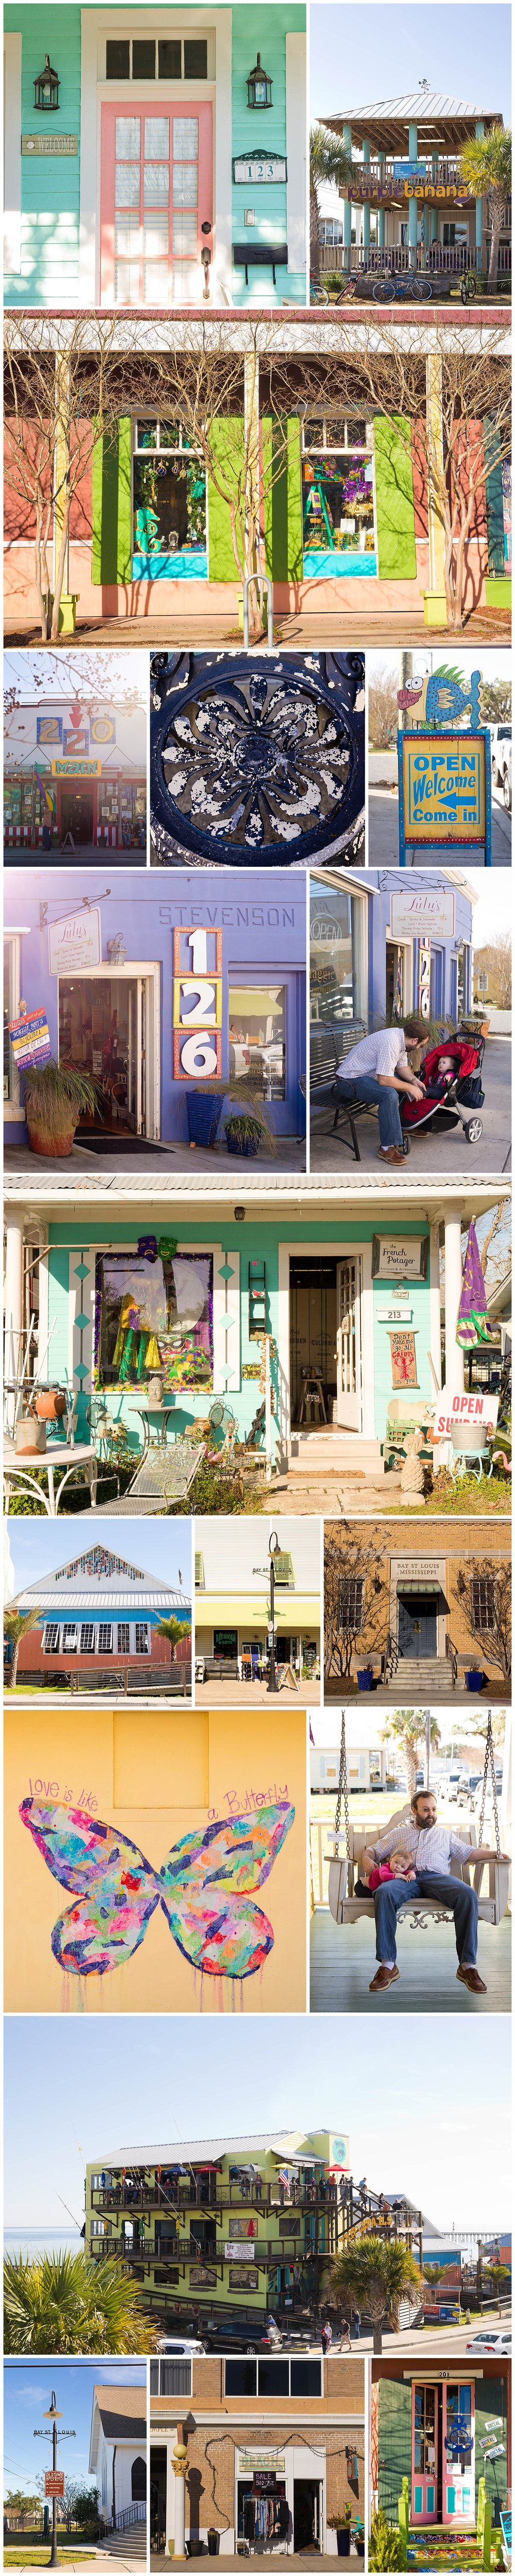 Bay St. Louis, Mississippi photographer - colorful buildings and storefronts